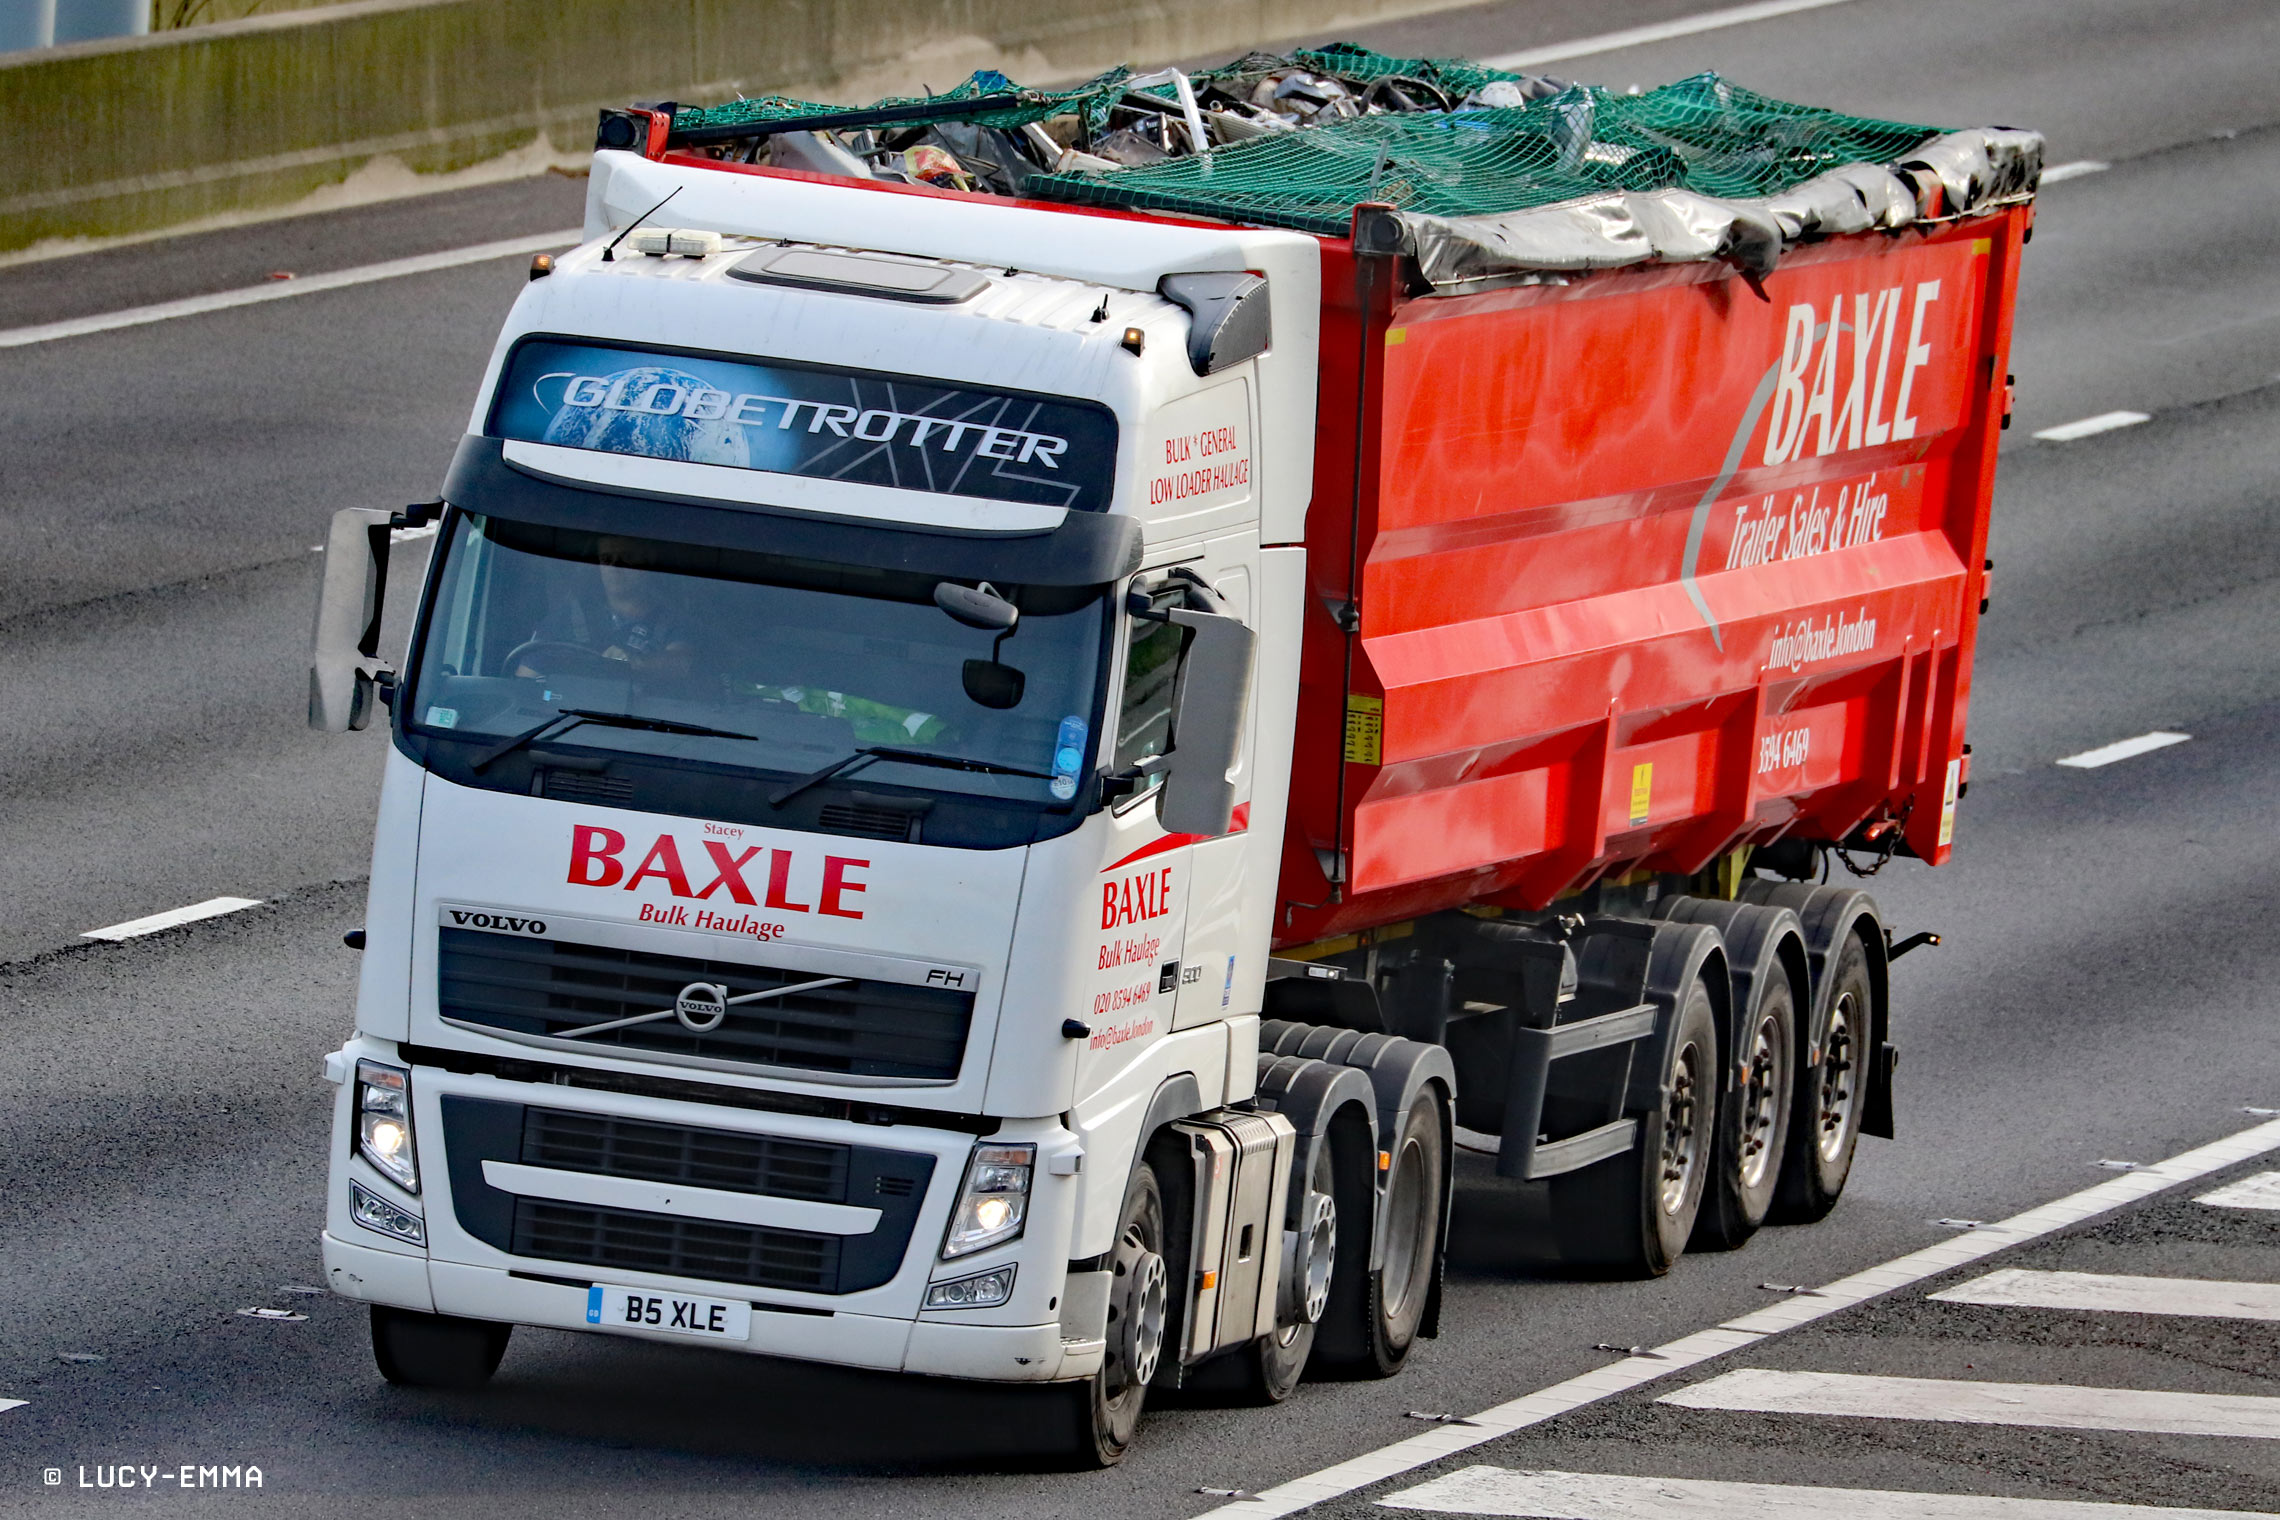 Baxle general haulage and transportation services London